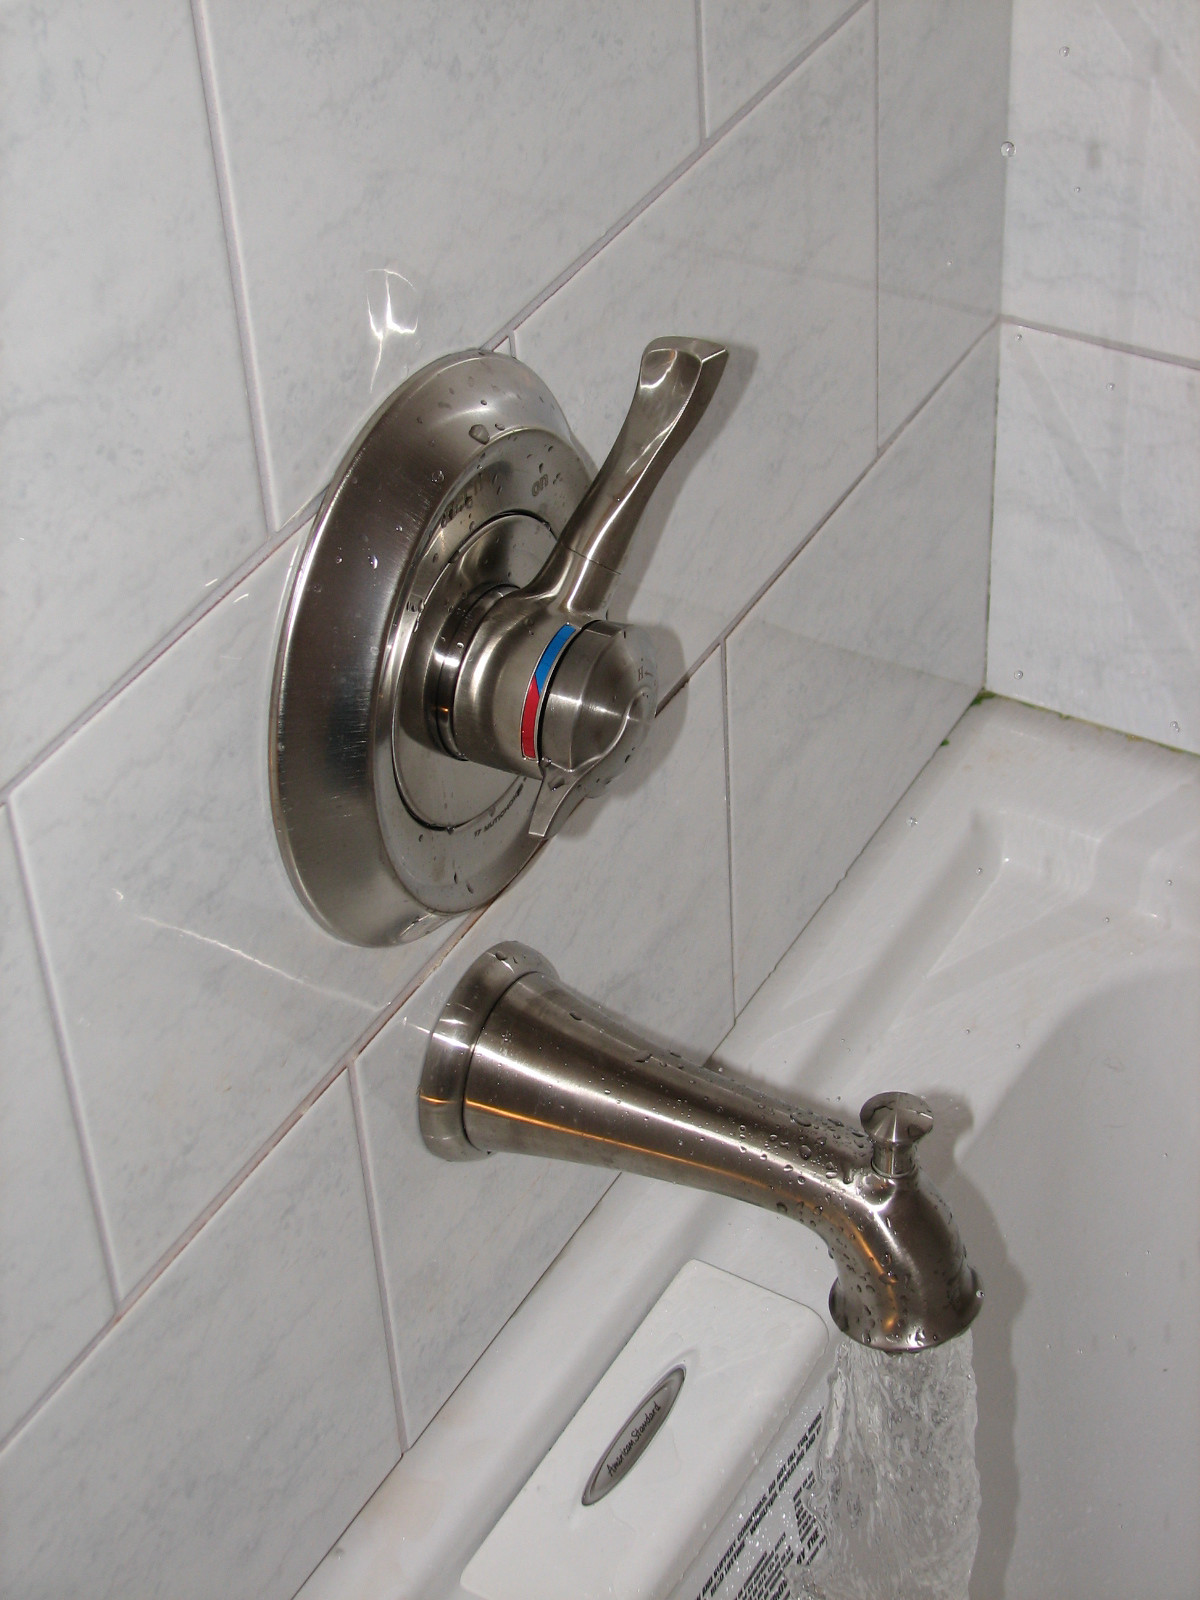 why does my shower head drip when the